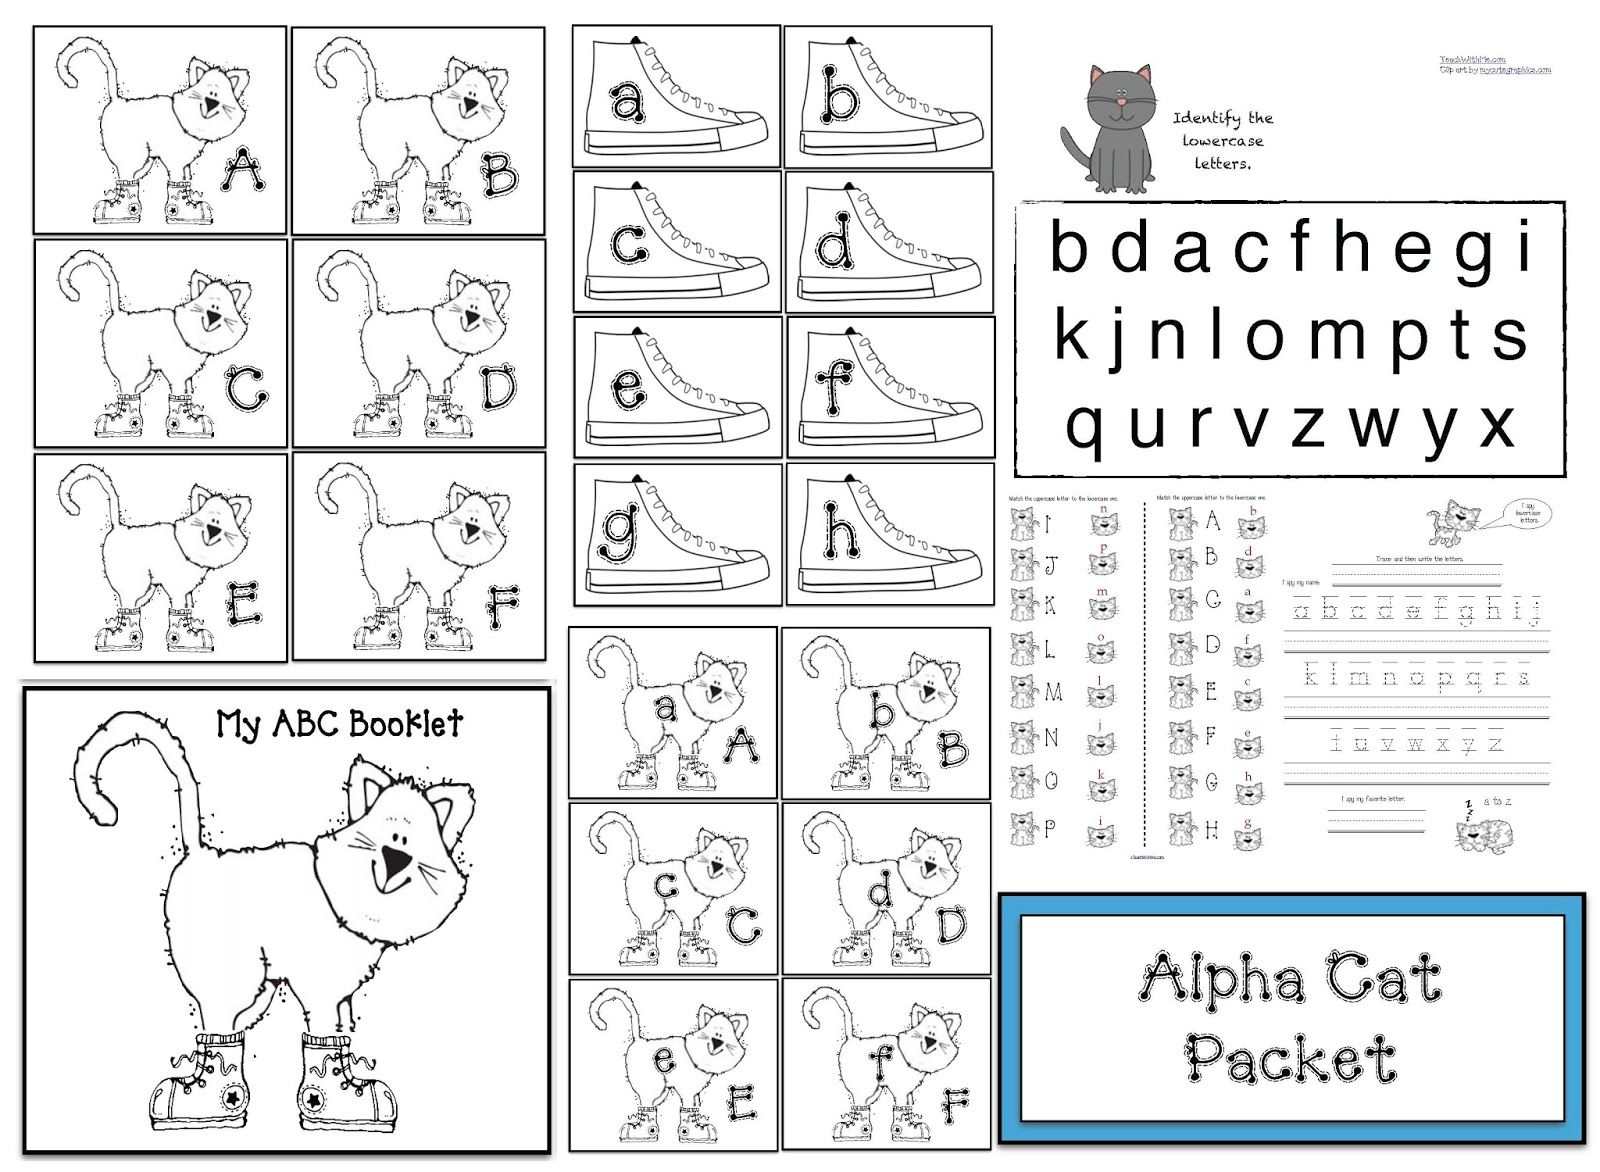 Alpha Cat Packet With Alphabet Activities & Games